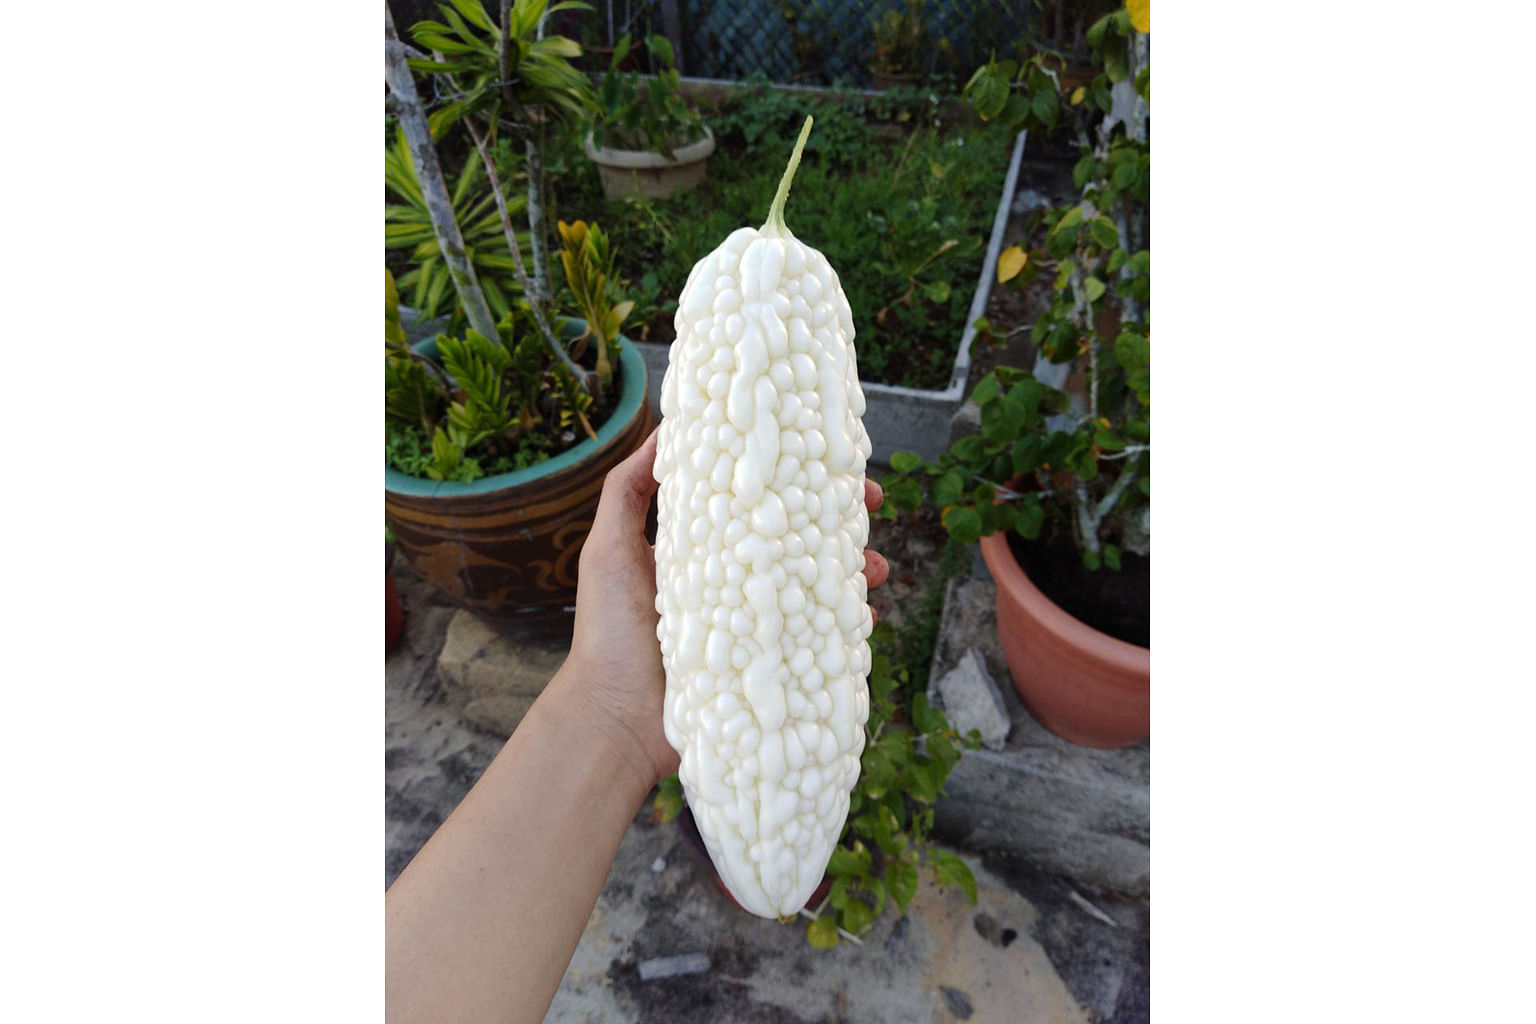 The produce at Pacific Agro Farm includes white bittergourd.